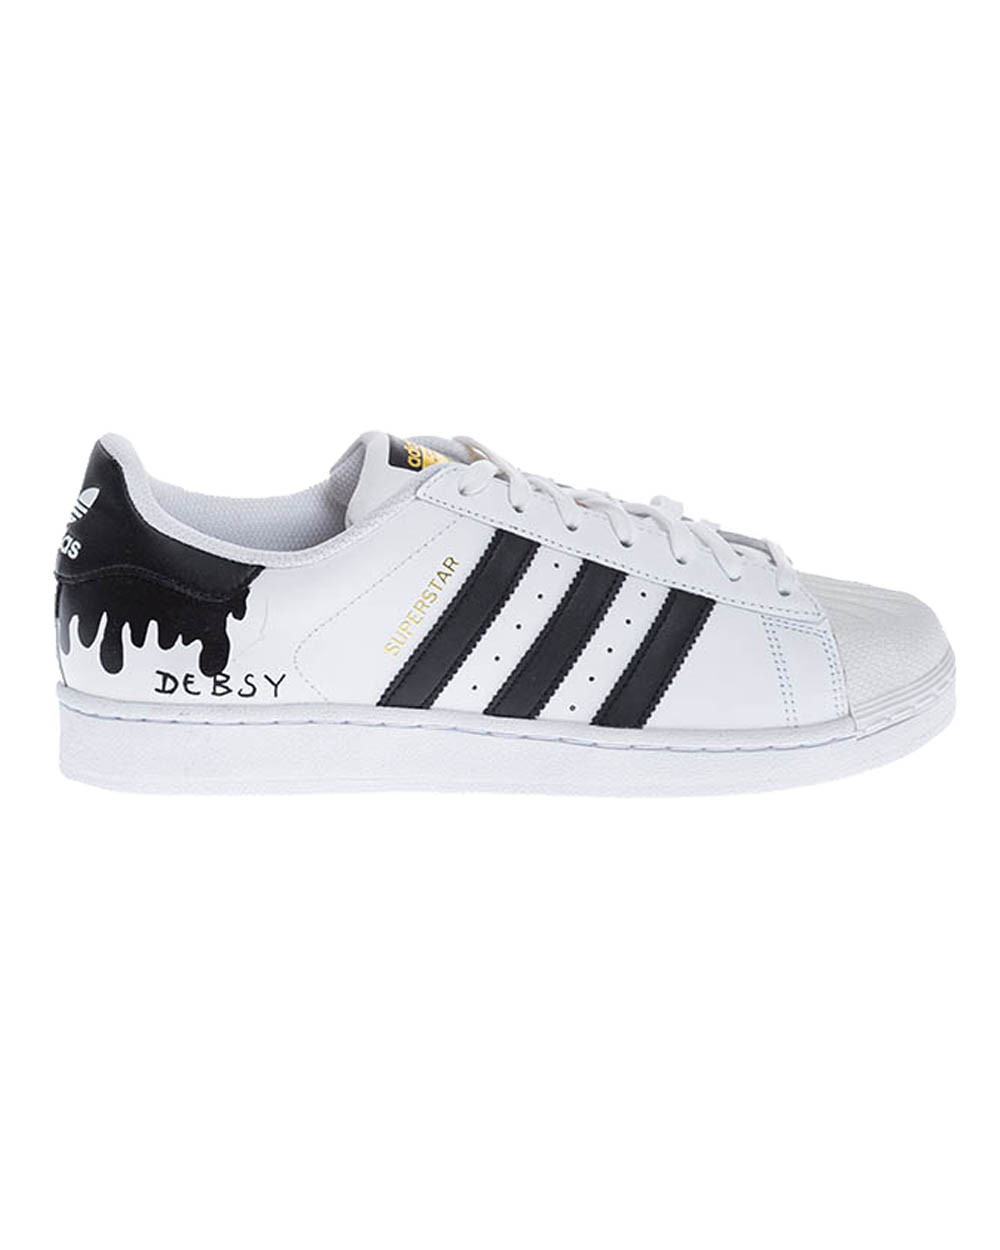 """Tennis shoes Adidas by Debsy - Super Star """"Flowing black"""" for men"""